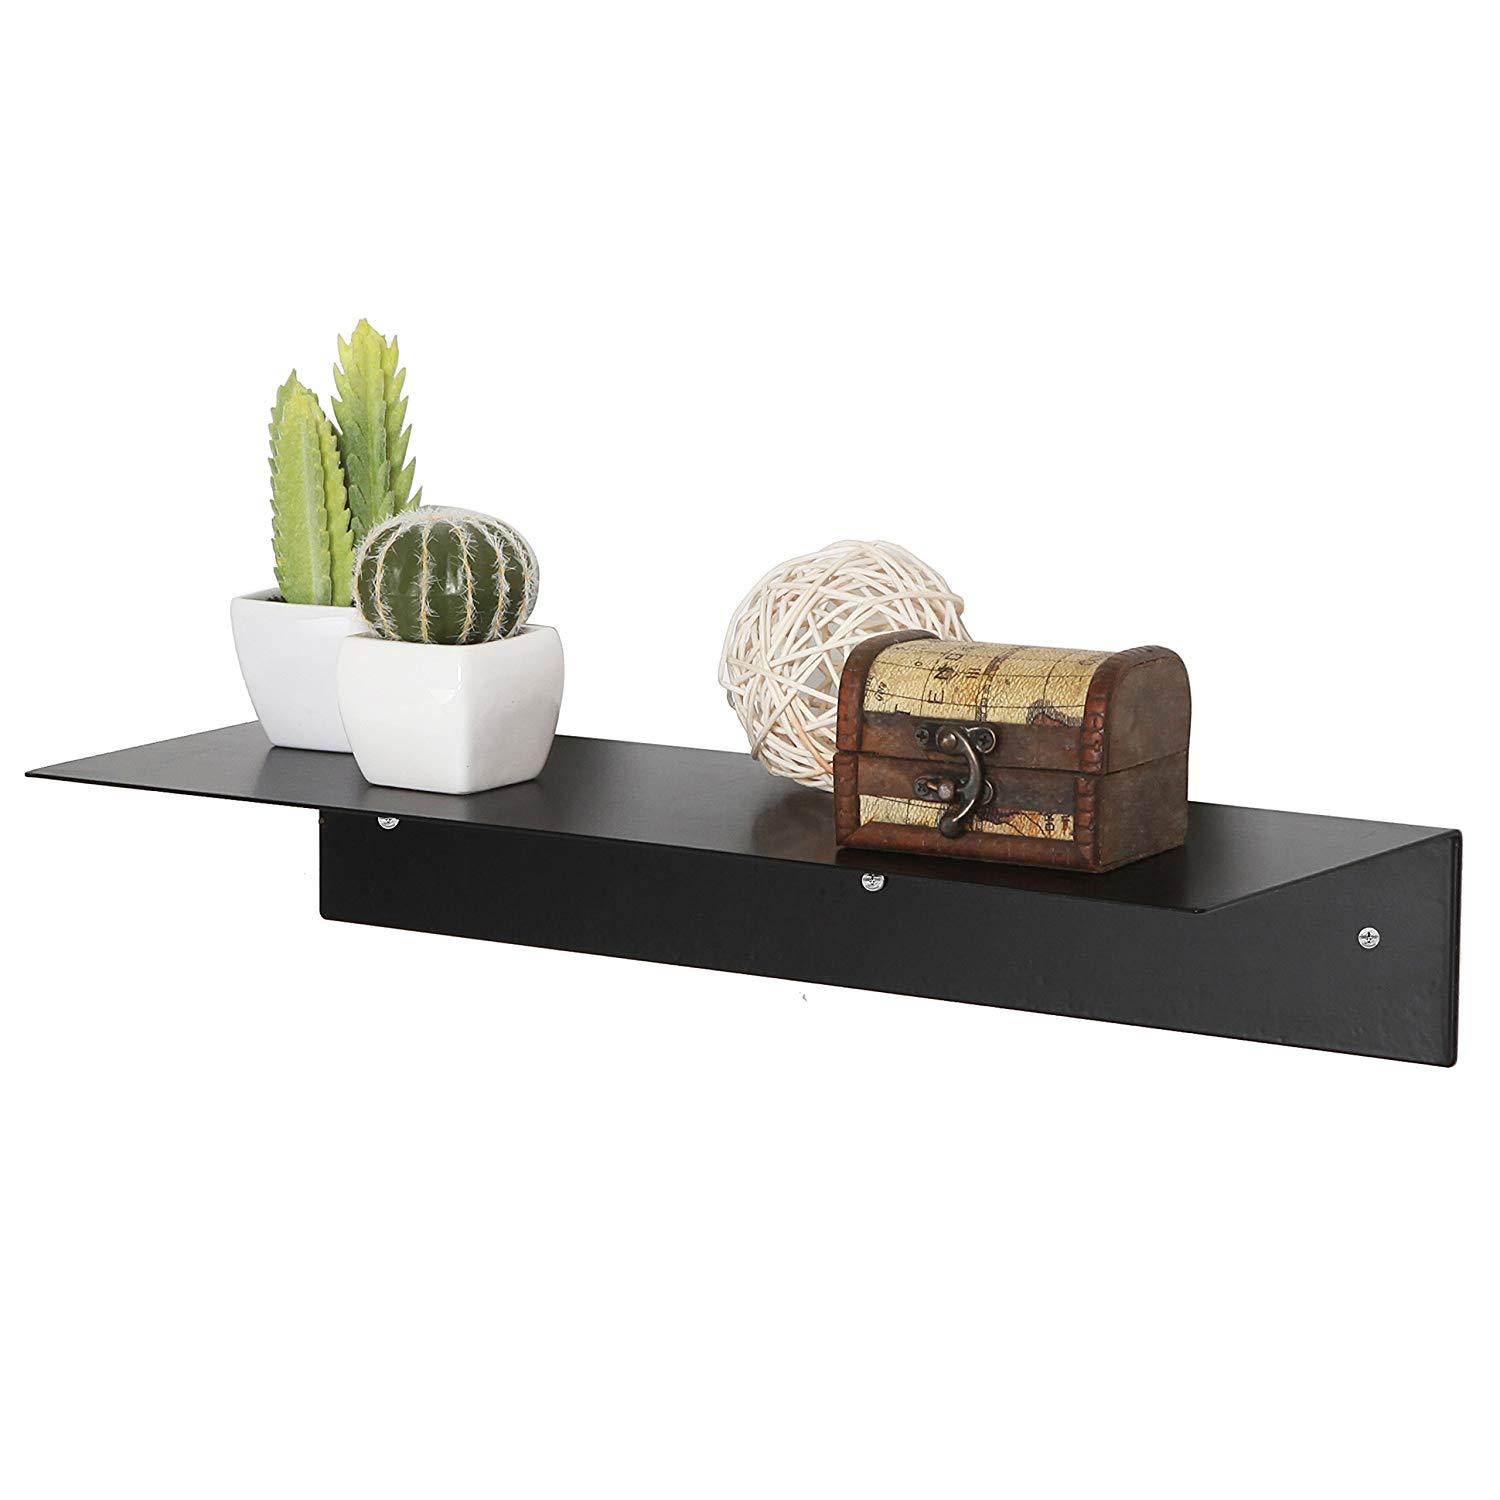 mygift inch modern black metal floating shelf wall mounted display stand hanging organizer rack home kitchen standard fireplace mantel height corner unit closet racks recessed